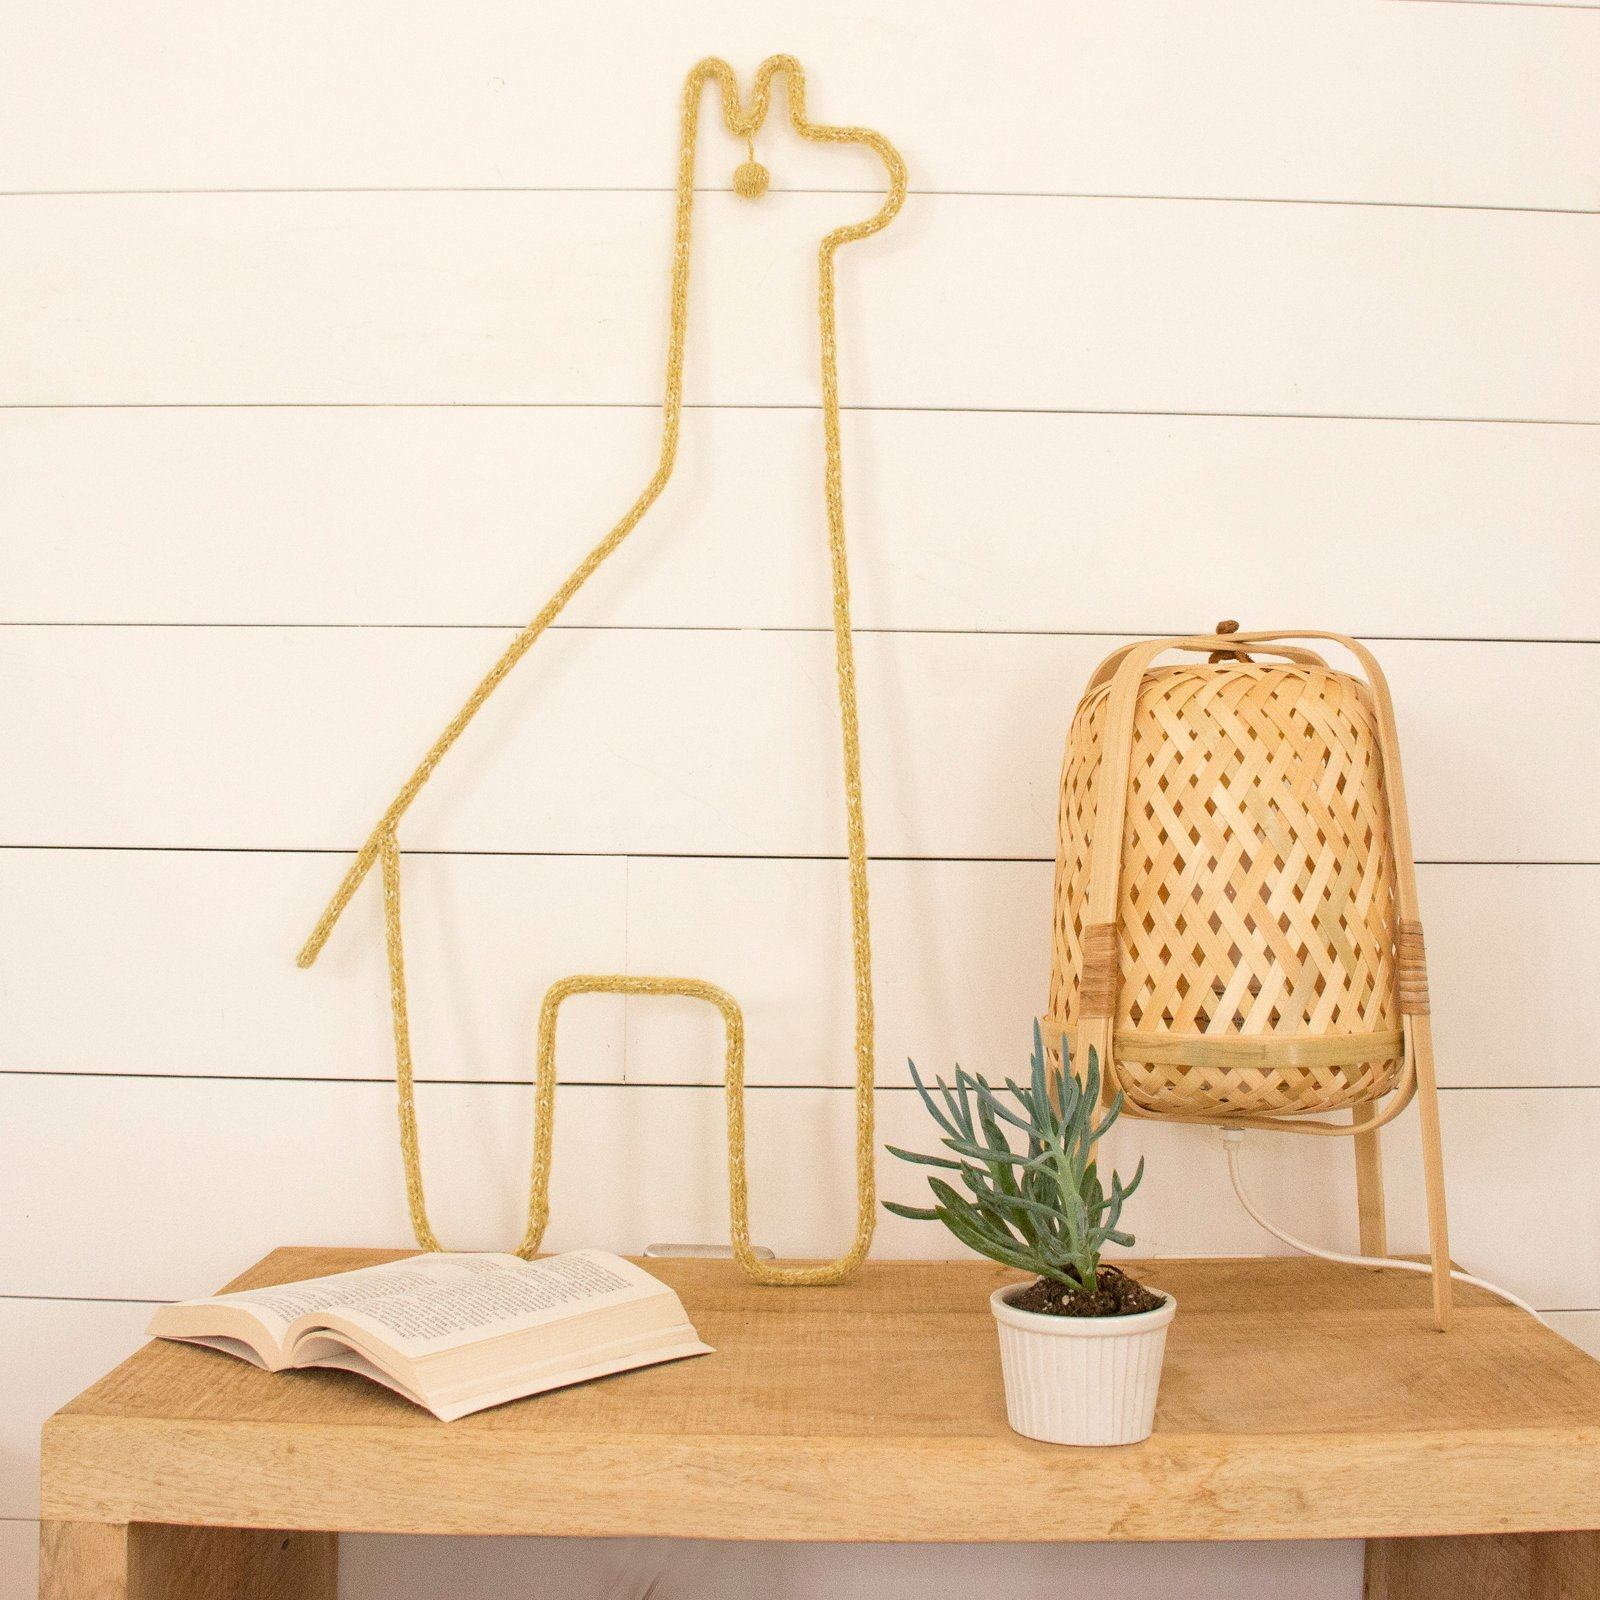 Giraffe Wall Hanging - Project Nursery